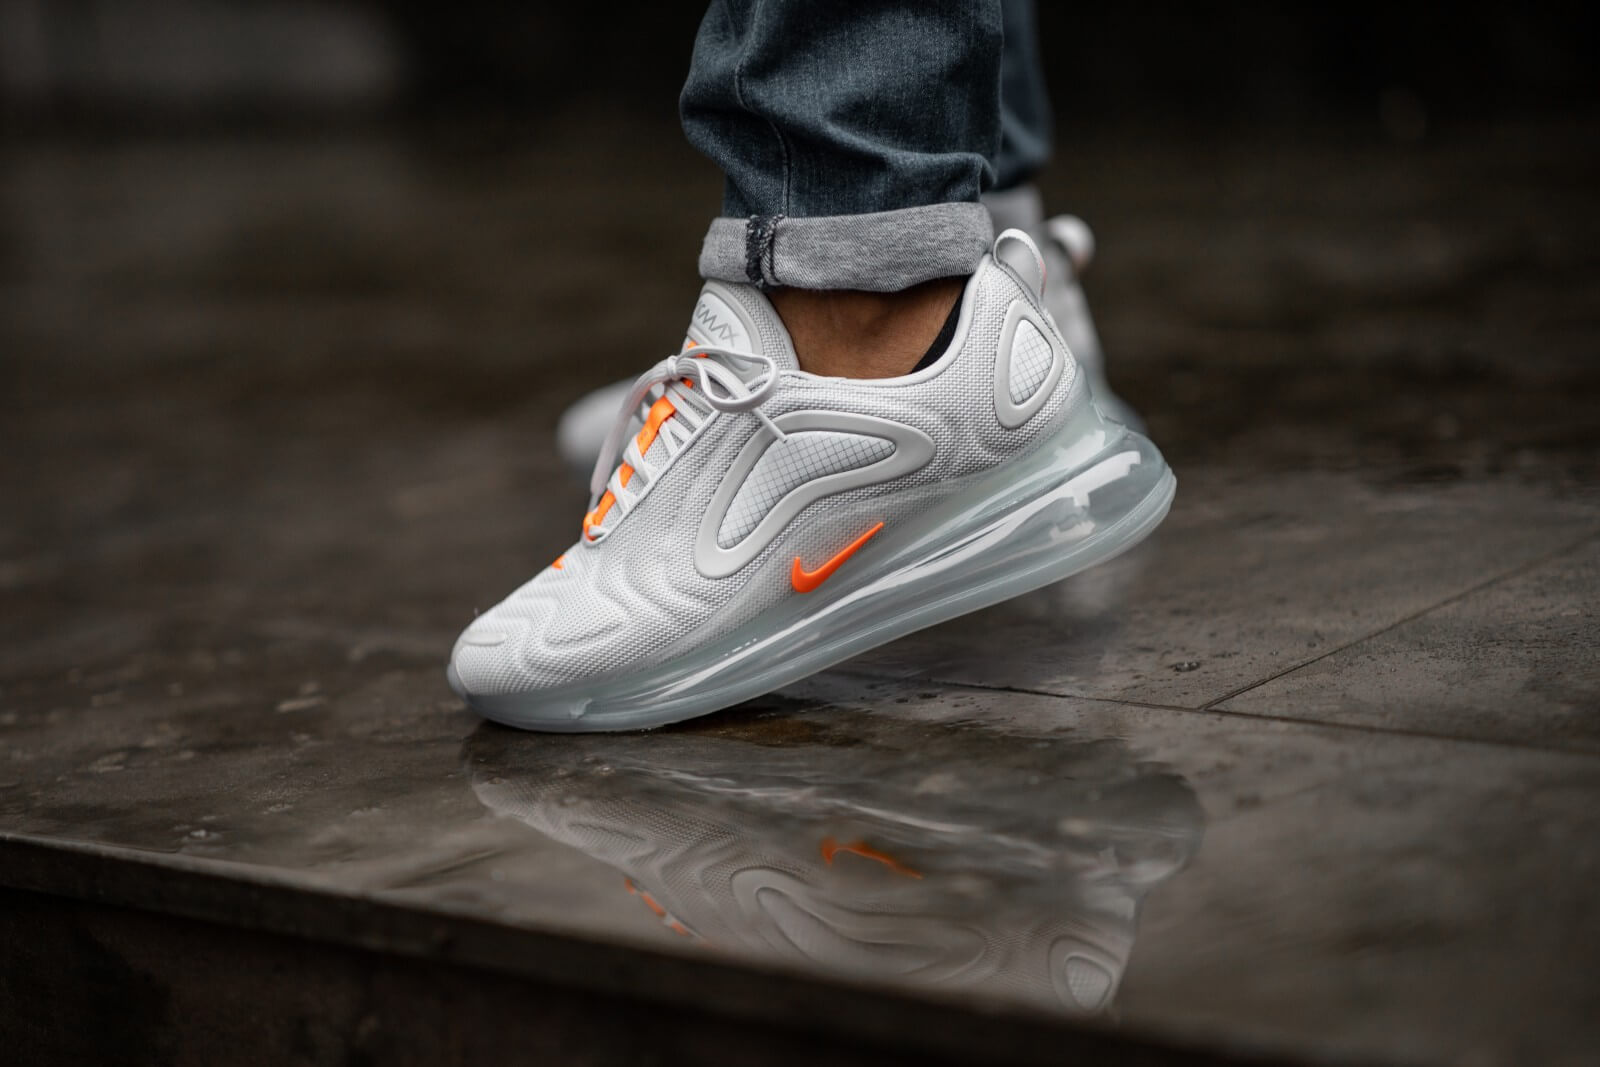 Nike Air Max 720 Pure PlatinumHyper Crimson CV1633 001